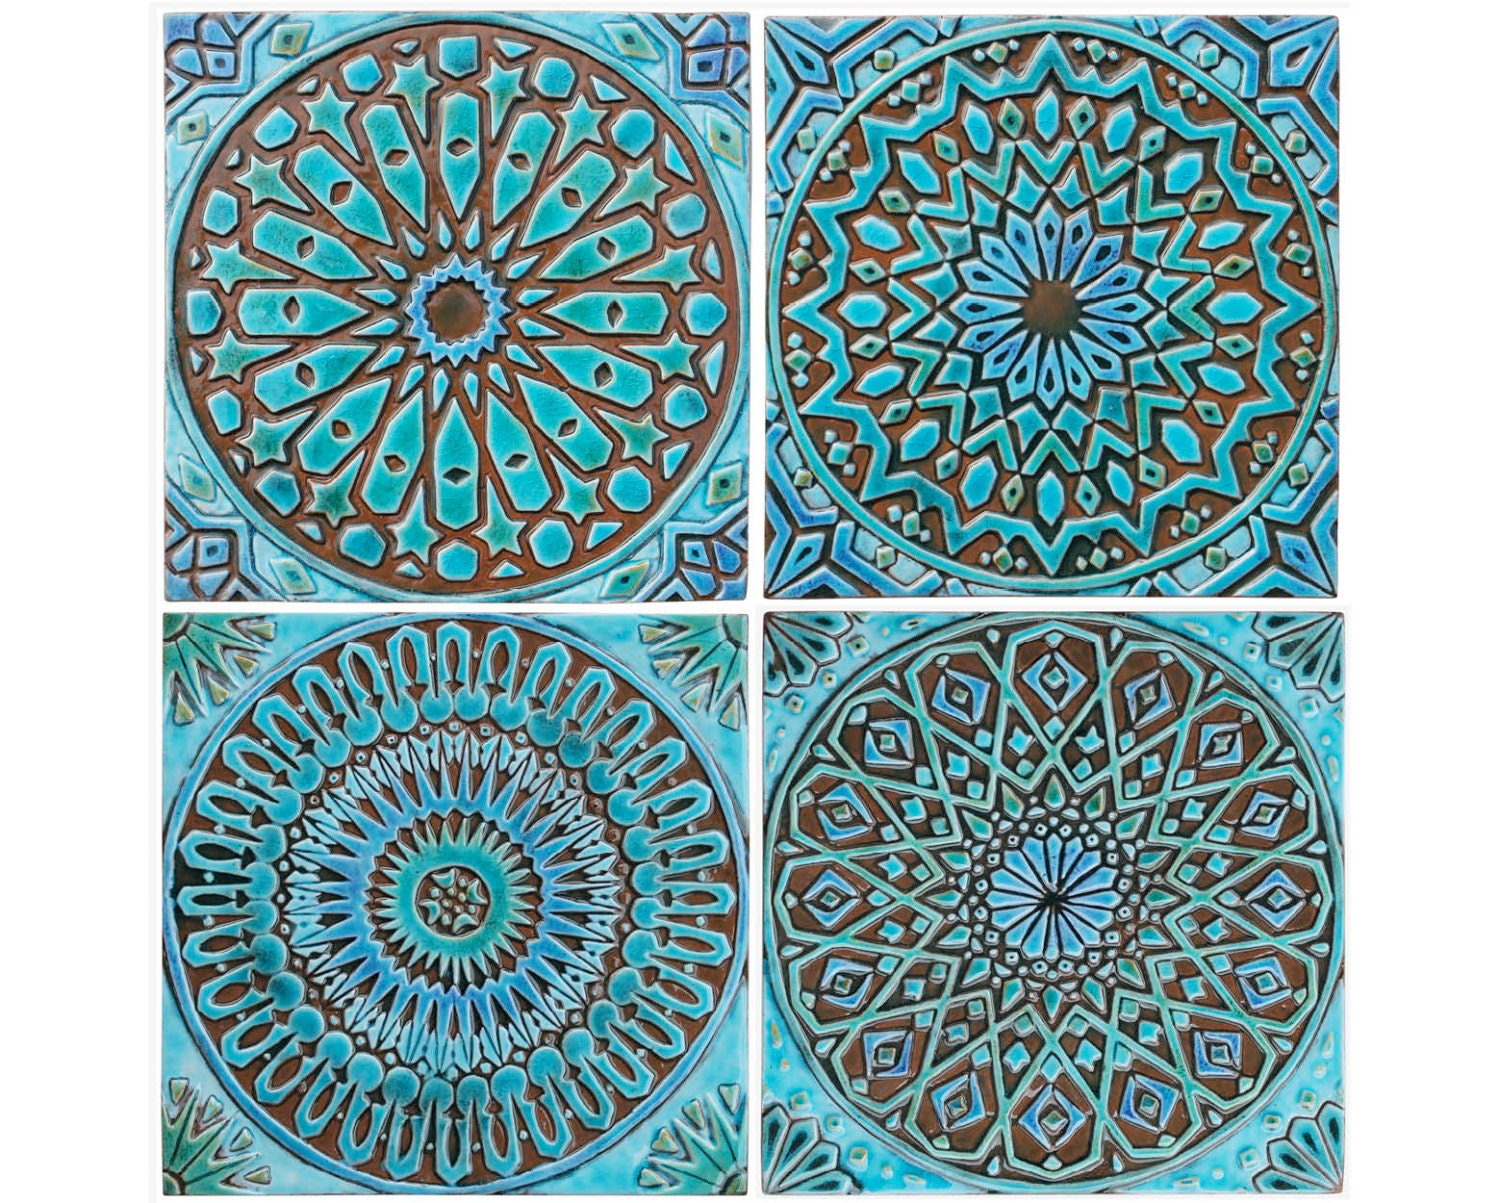 4 moroccan wall hangings ceramic tiles wall decor Moroccan ceramic floor tile